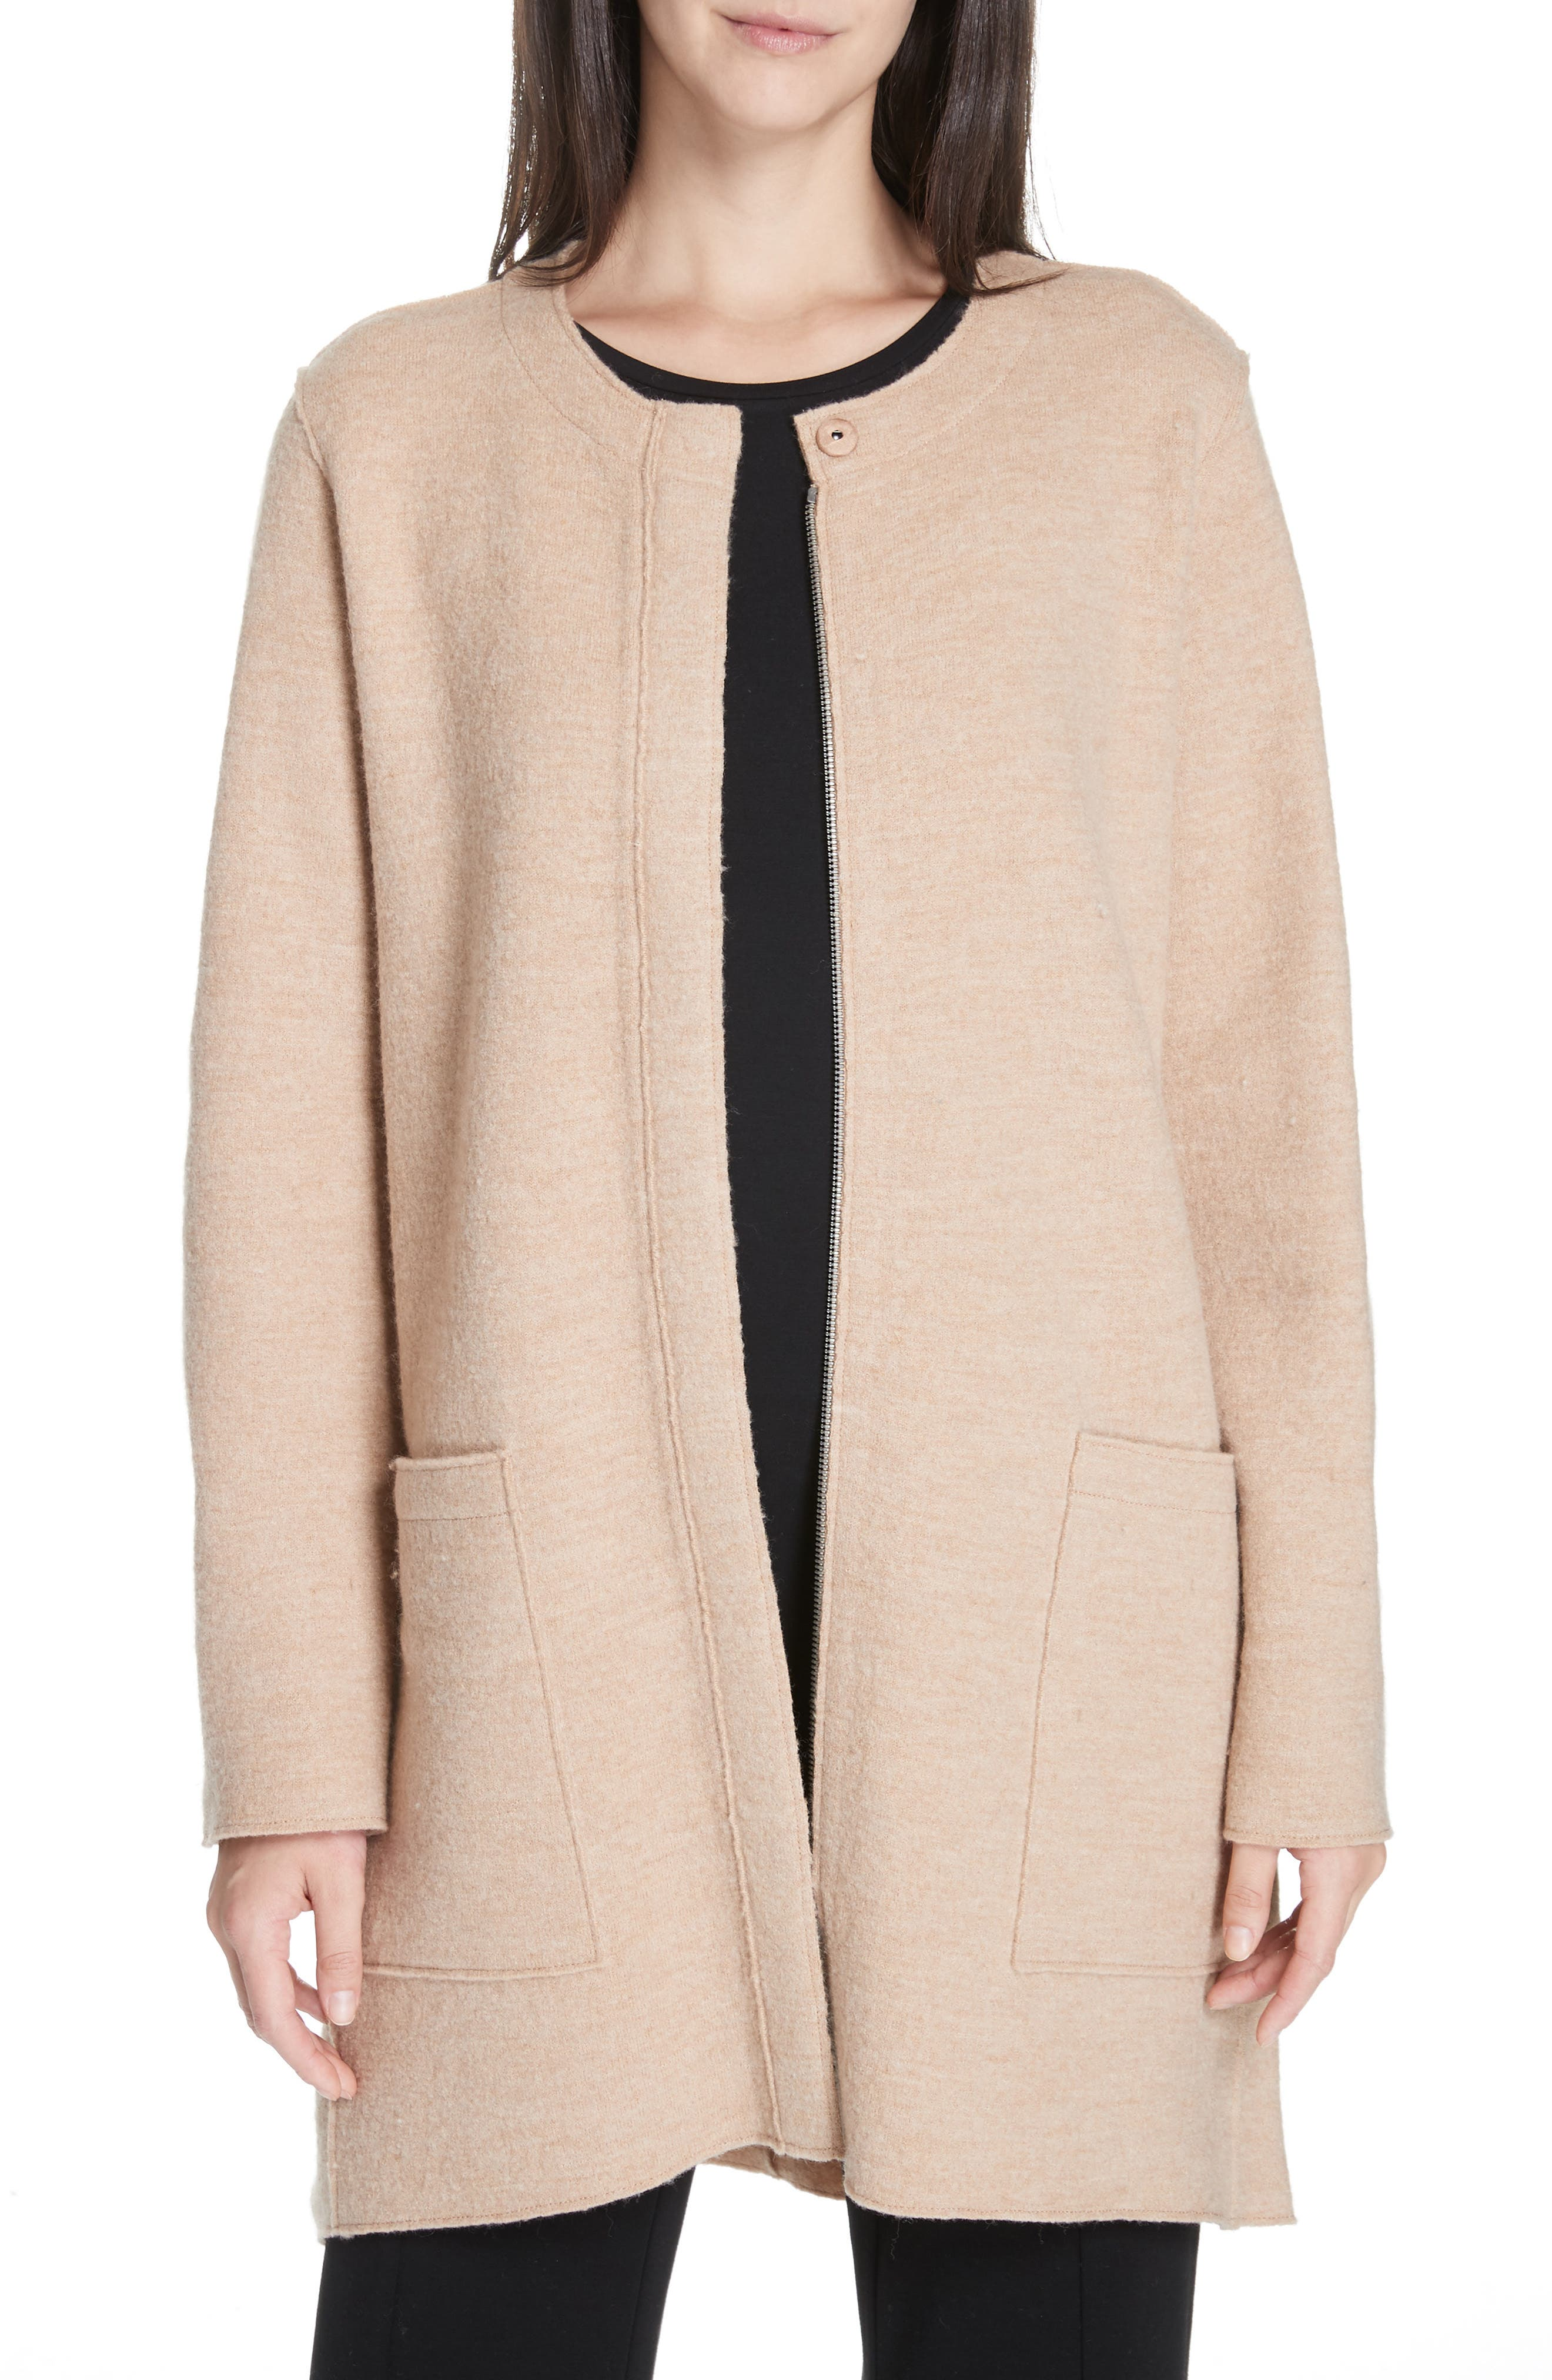 EILEEN FISHER, Zip Wool Jacket, Main thumbnail 1, color, 200